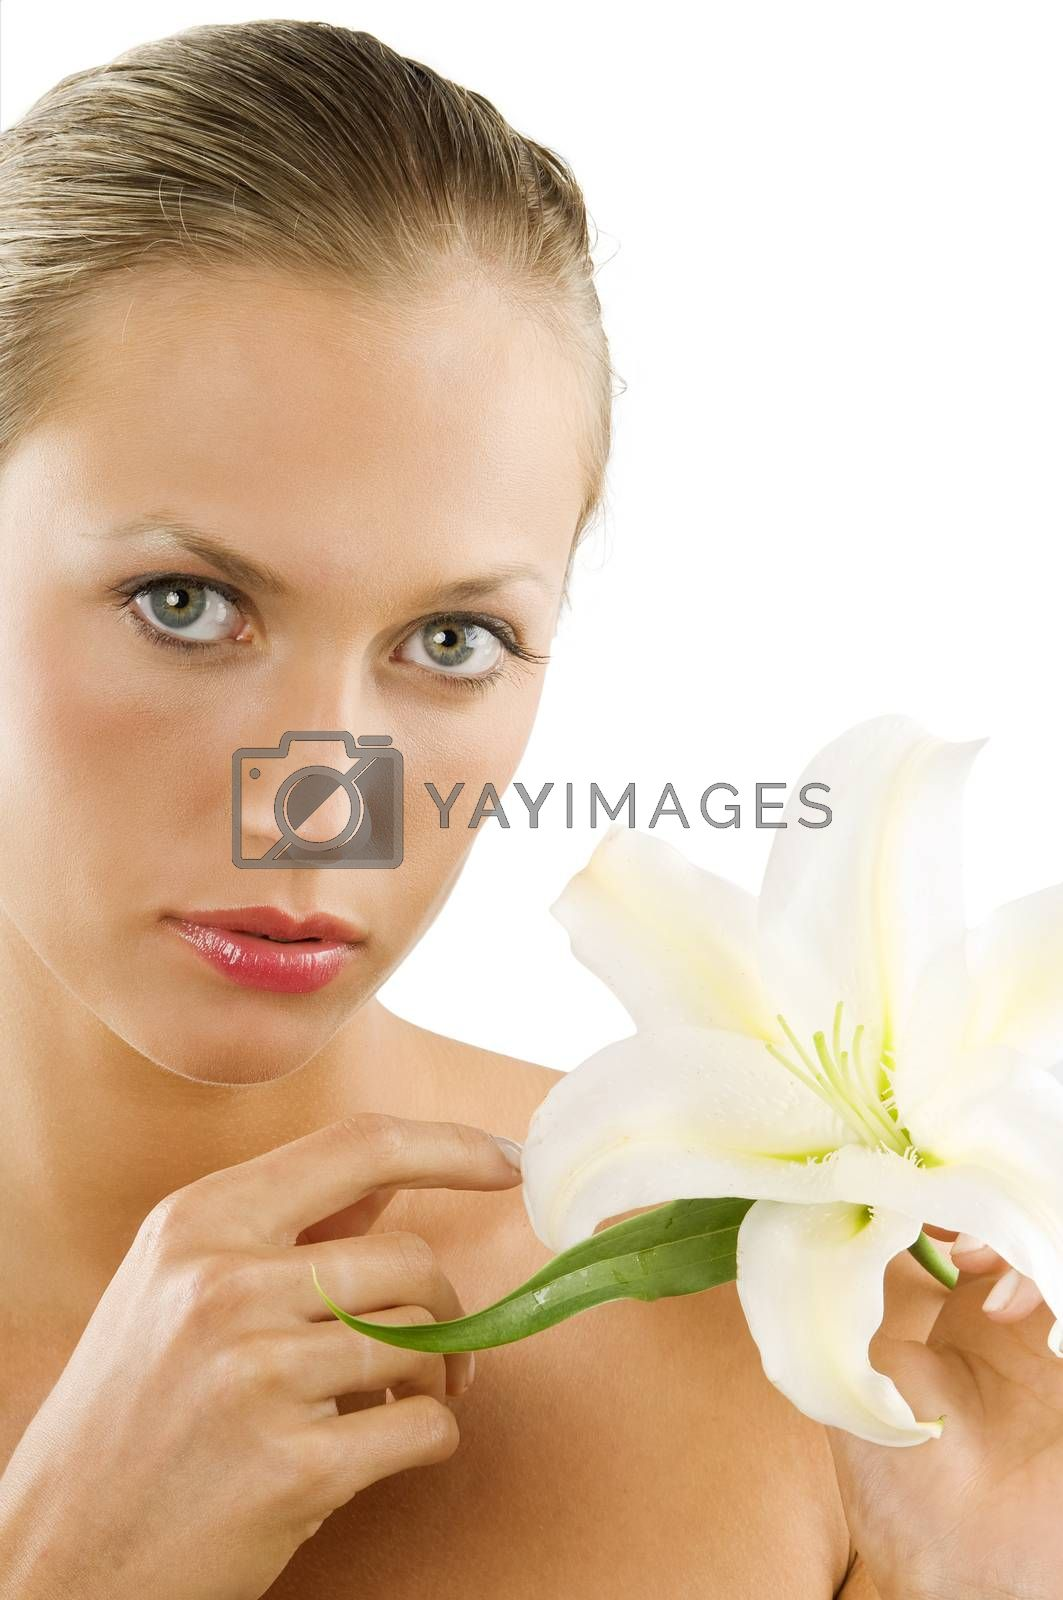 Royalty free image of portrait and lily by fotoCD